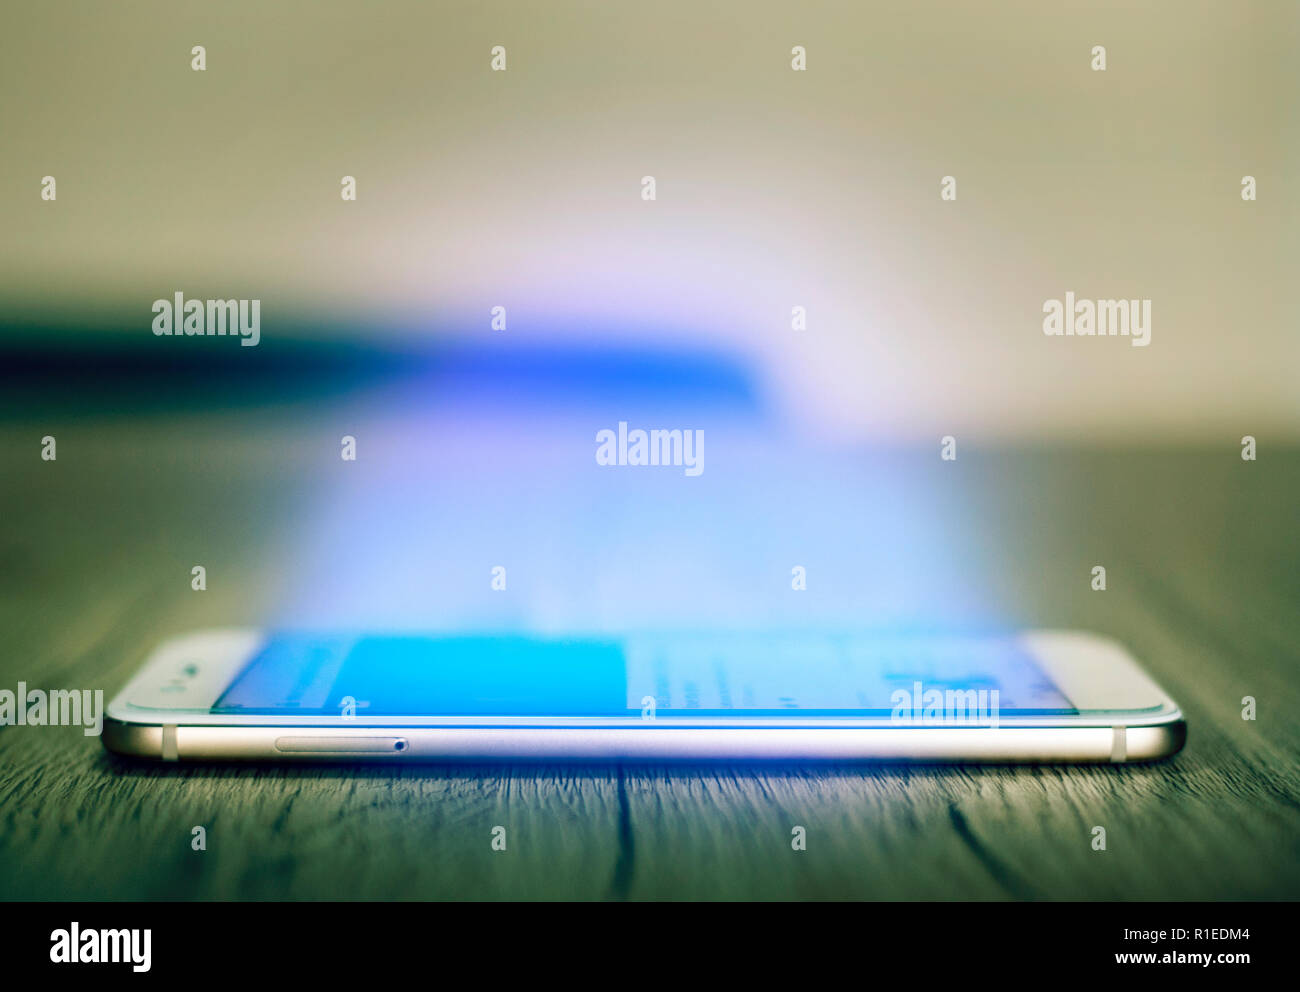 Side view of Smartphone on the wooden table with inviting blue light glowing coming from the screen. Addicted to internet concept. Selective focus on - Stock Image